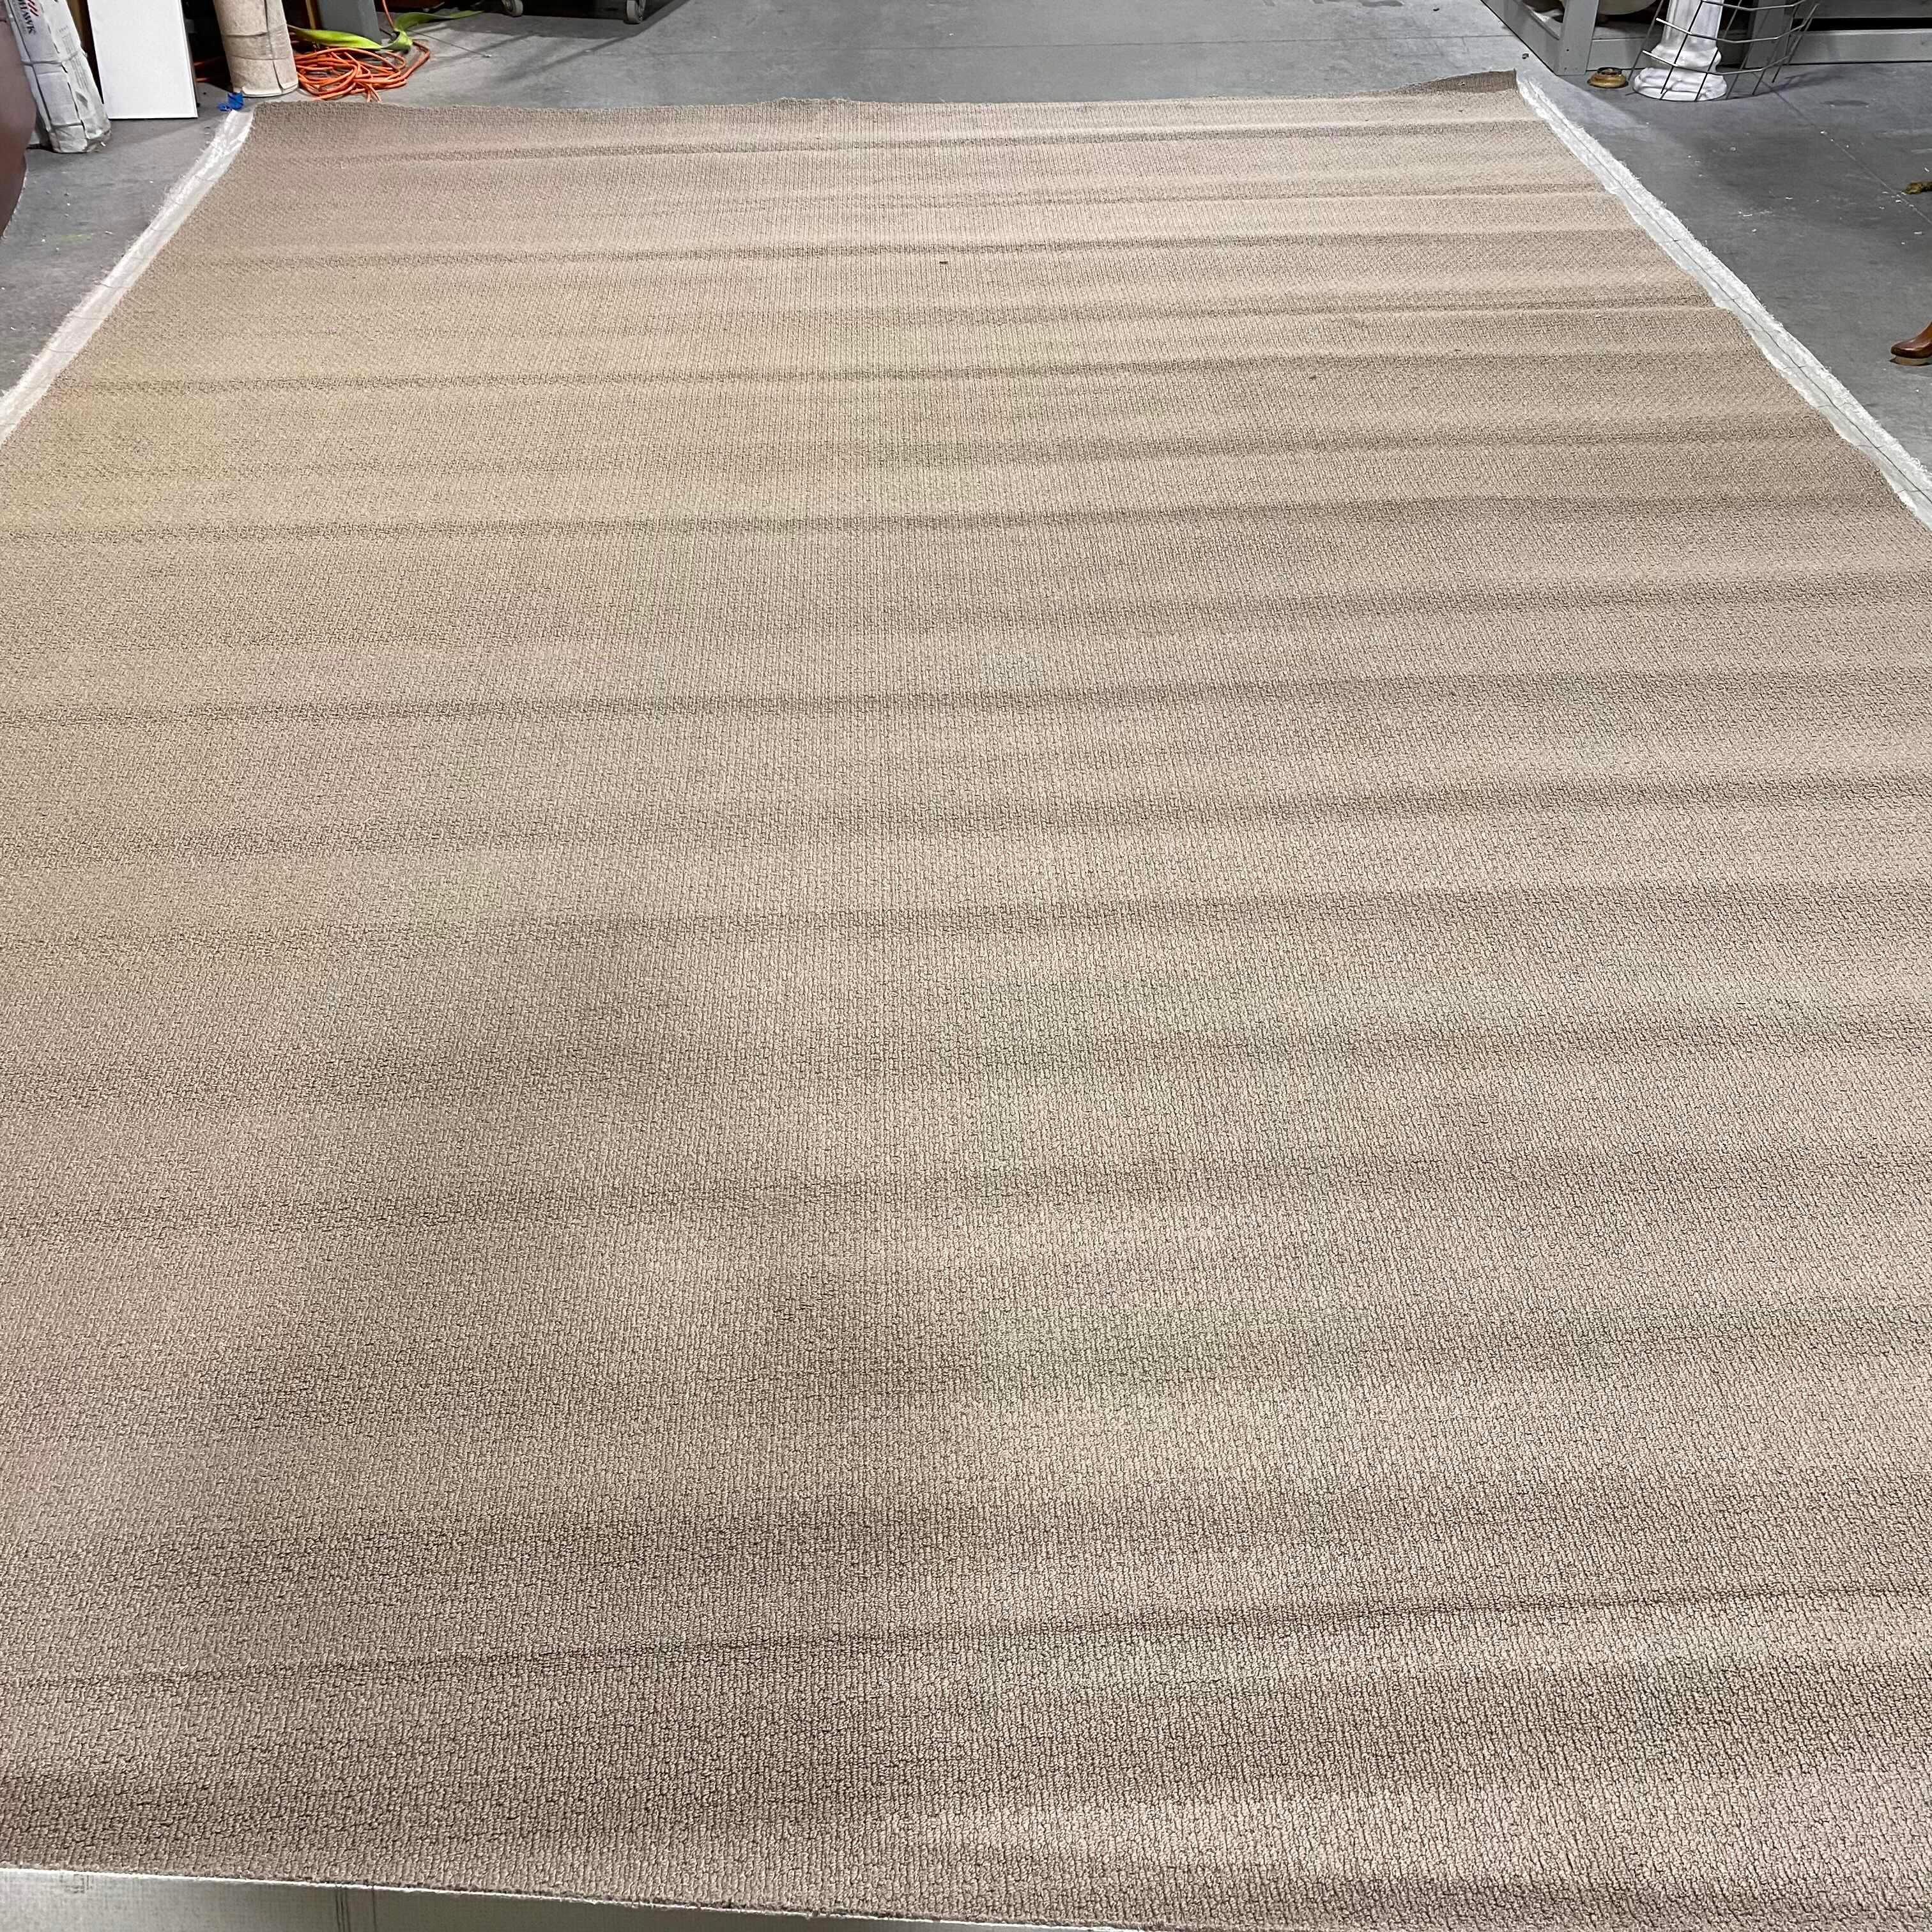 "17' 8"" x 12' Carpet Roll 5 212 Square Feet"